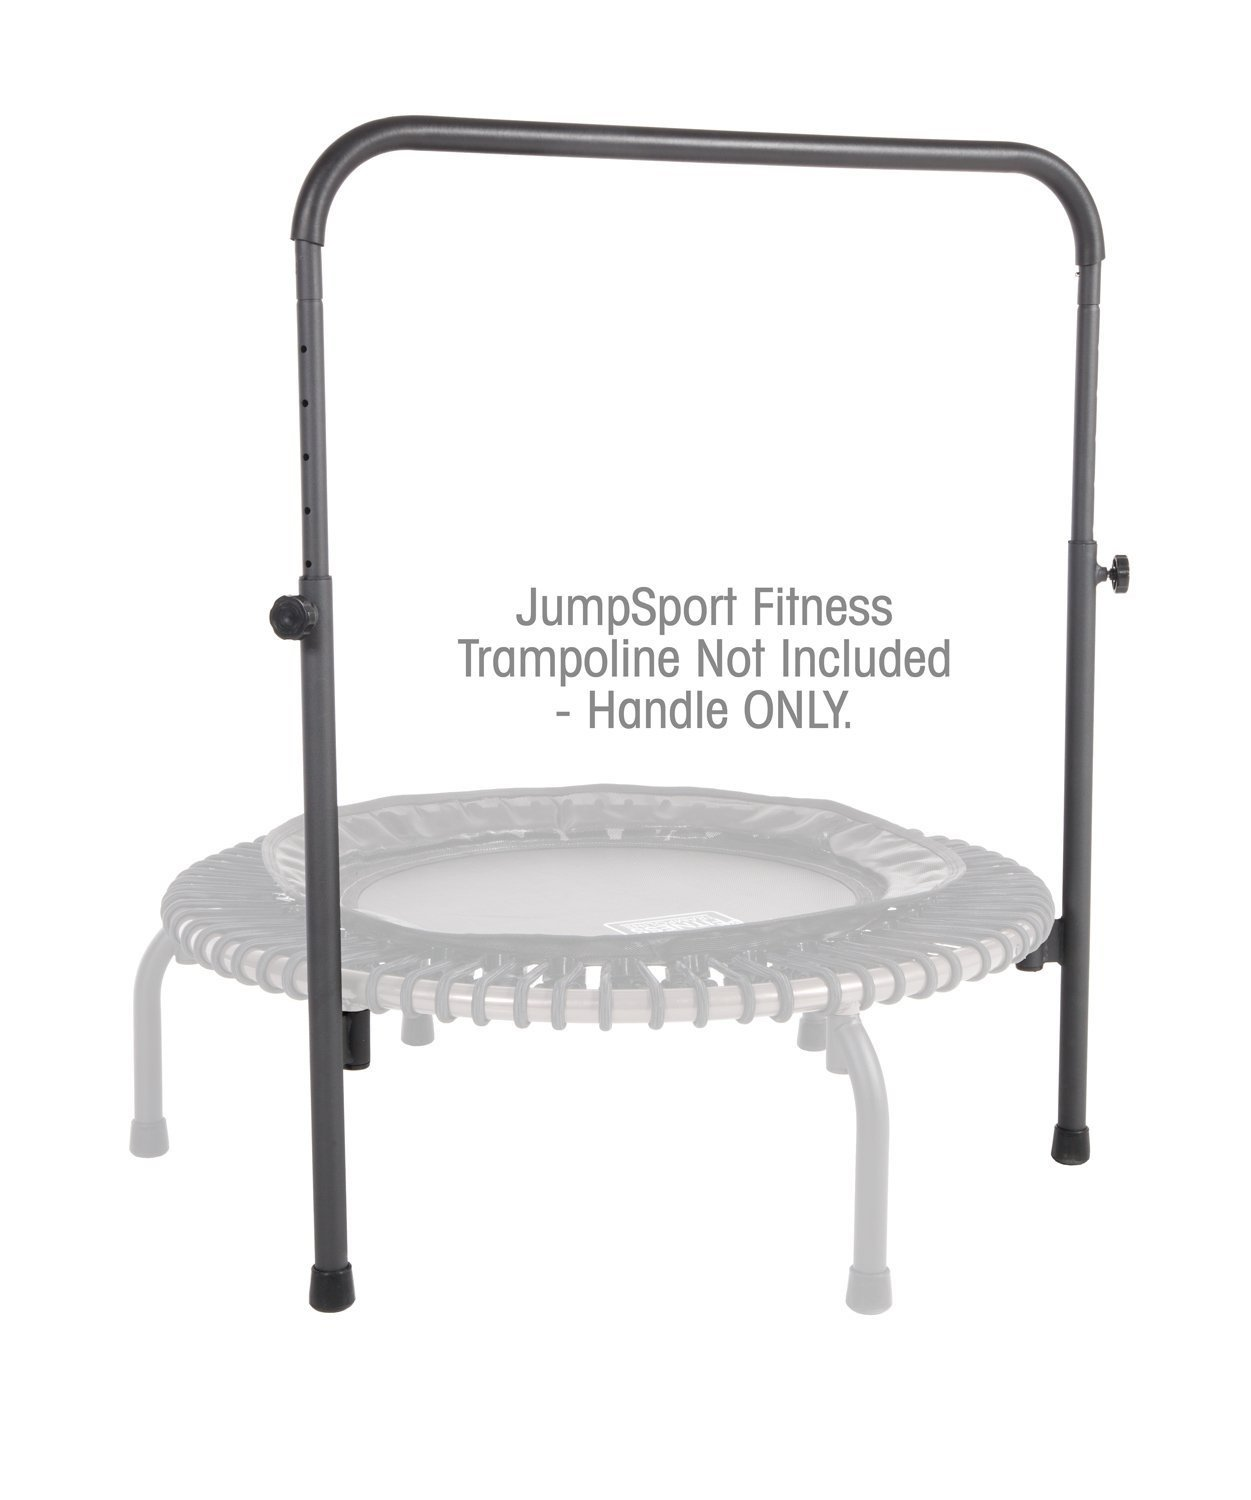 JumpSport Handle Bar Accessory For 44 Arched Leg Fitness Trampolines Fits Only 44 Diameter JumpSport Rebounder Trampoline Not Included